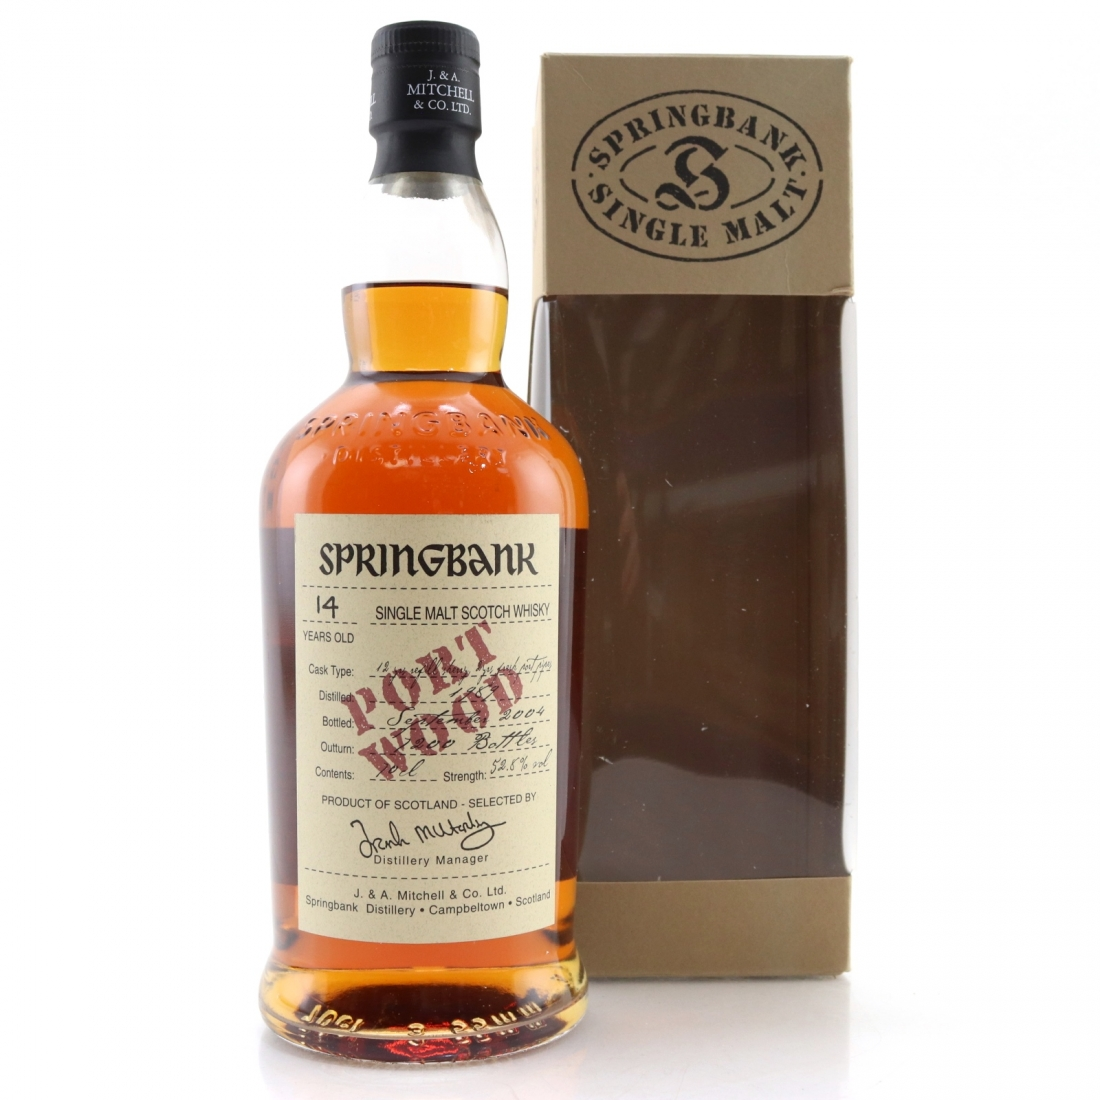 Springbank 1989 Port Wood 14 Year Old